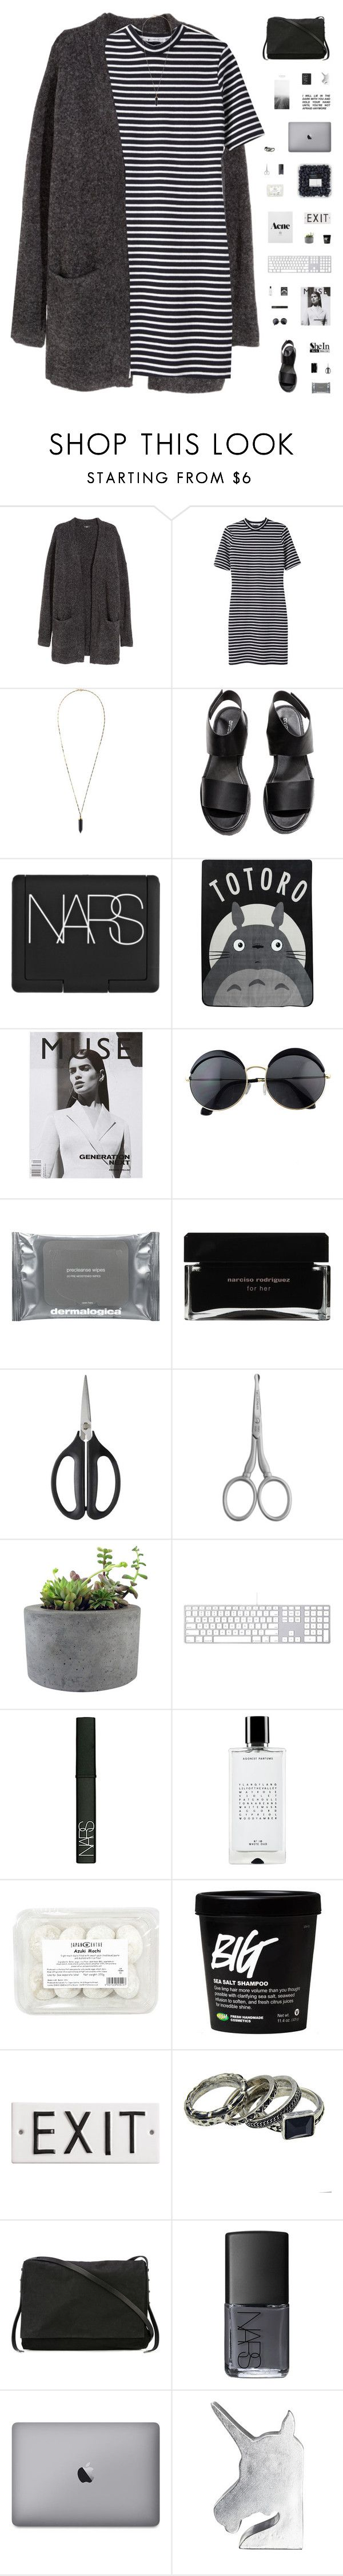 """""""FRAGILE"""" by c-hristinep ❤ liked on Polyvore featuring H&M, T By Alexander Wang, Isabel Marant, NARS Cosmetics, Ghibli, Dermalogica, Narciso Rodriguez, OXO, Tweezerman and Rough Fusion"""